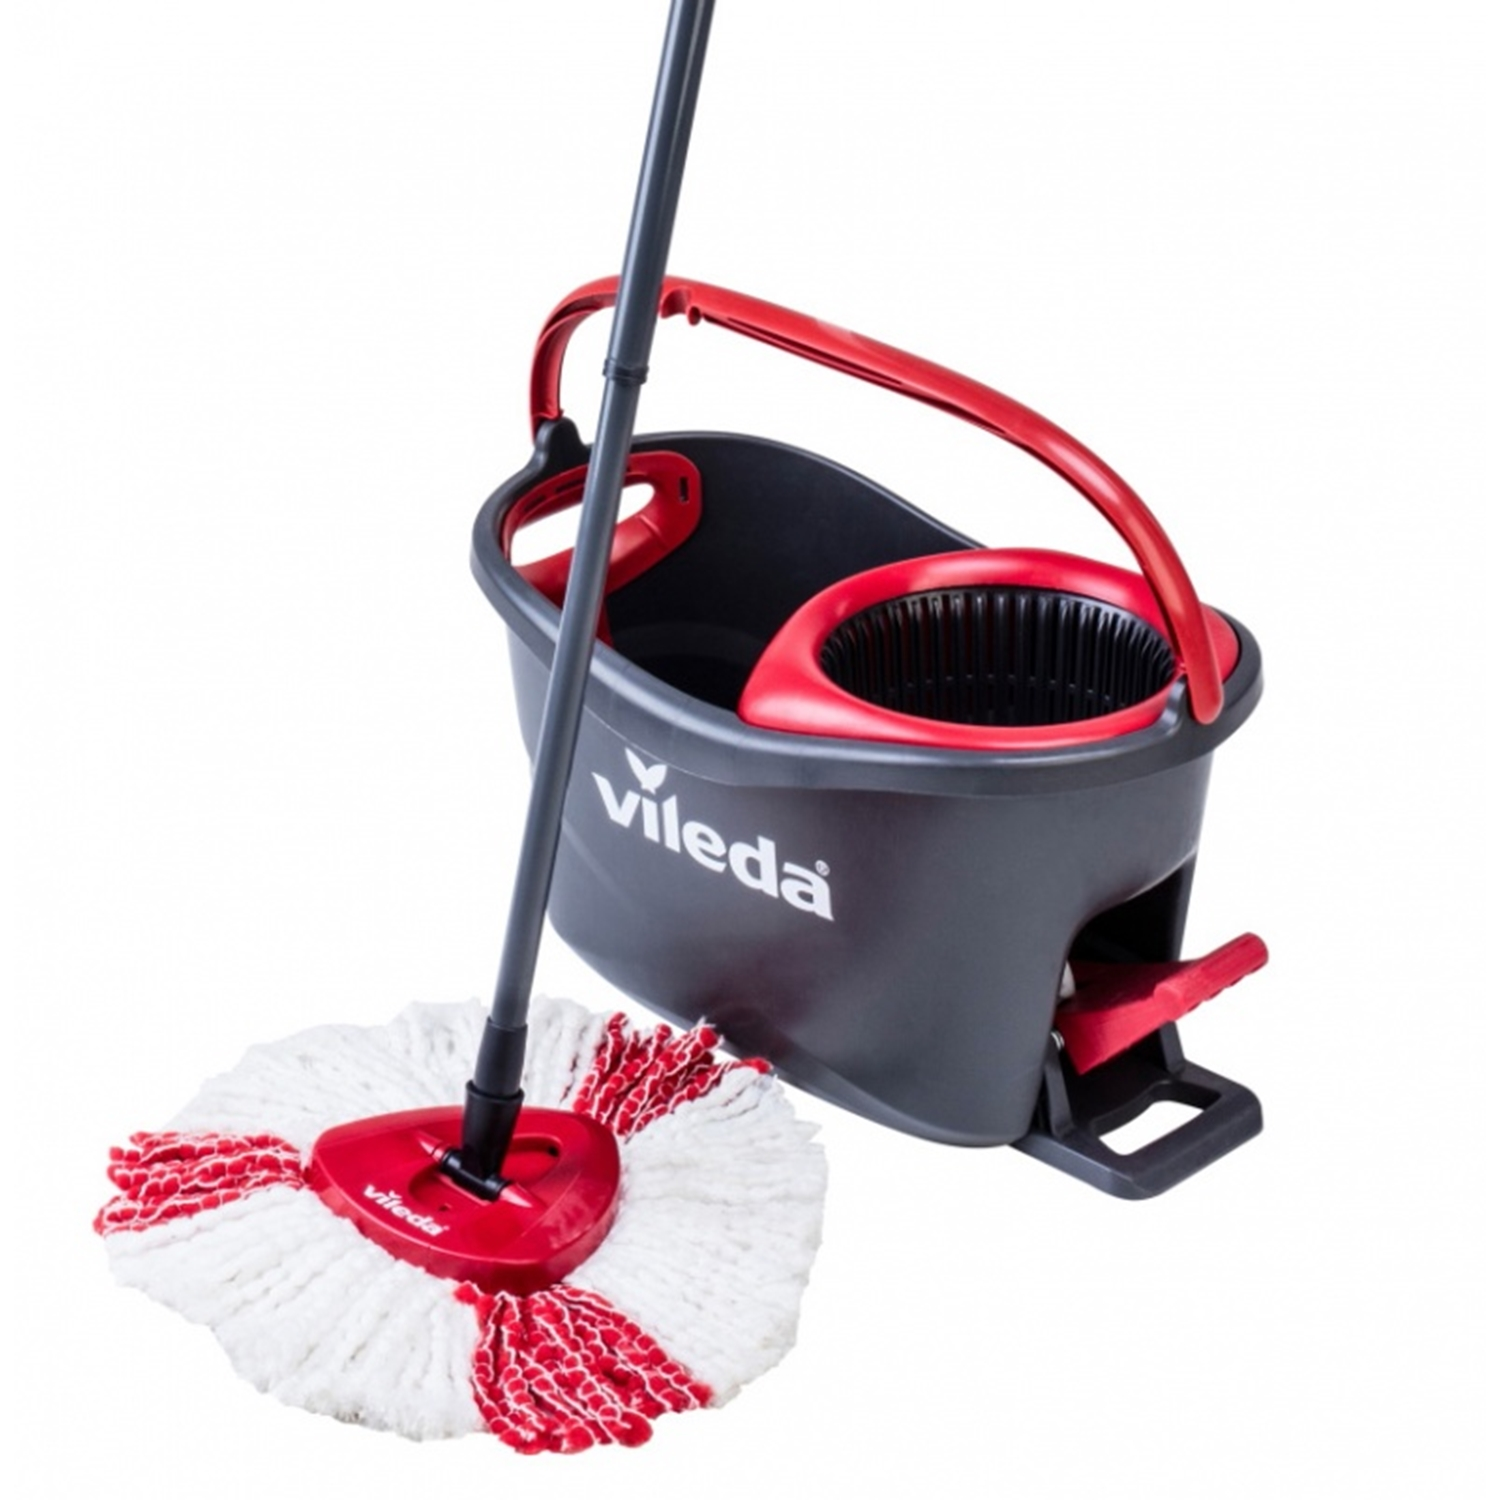 Details About Vileda Easy Wring And Clean Turbo Mop And Bucket Set Or Replacement Mop Head Uk